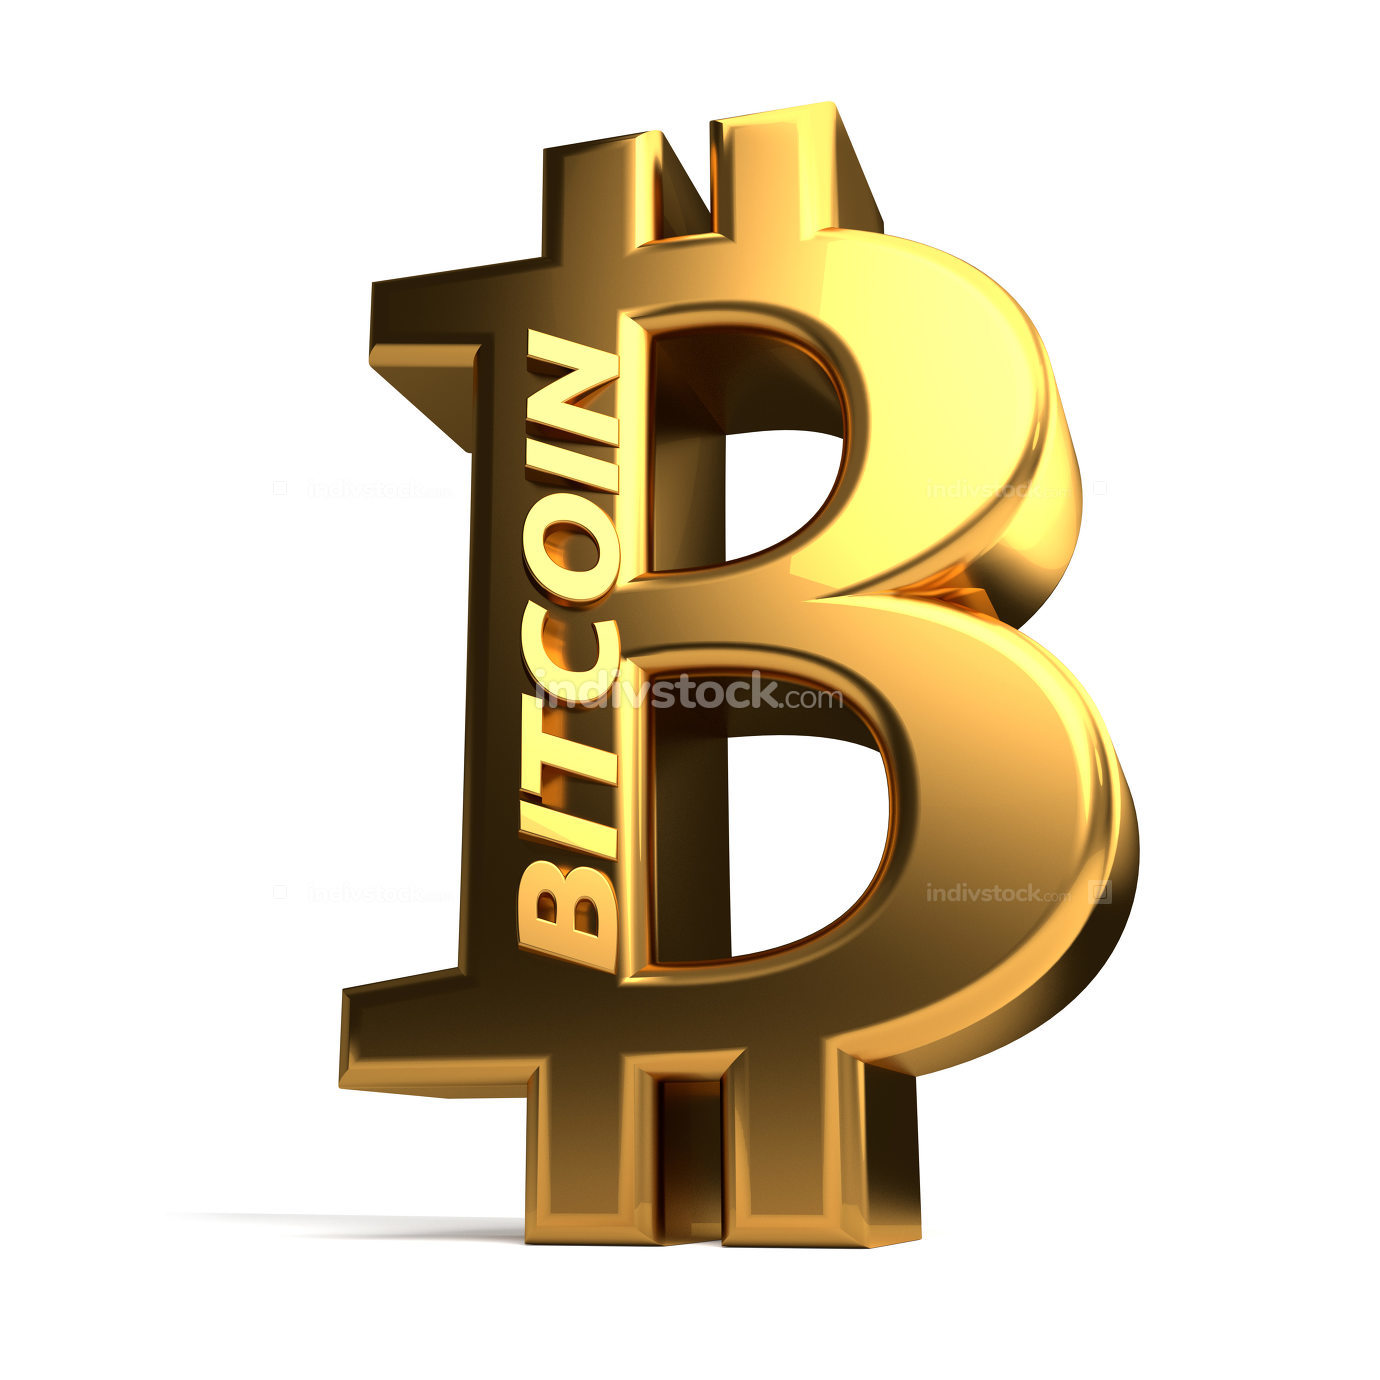 Bitcoin 3d rendering symbol isolated